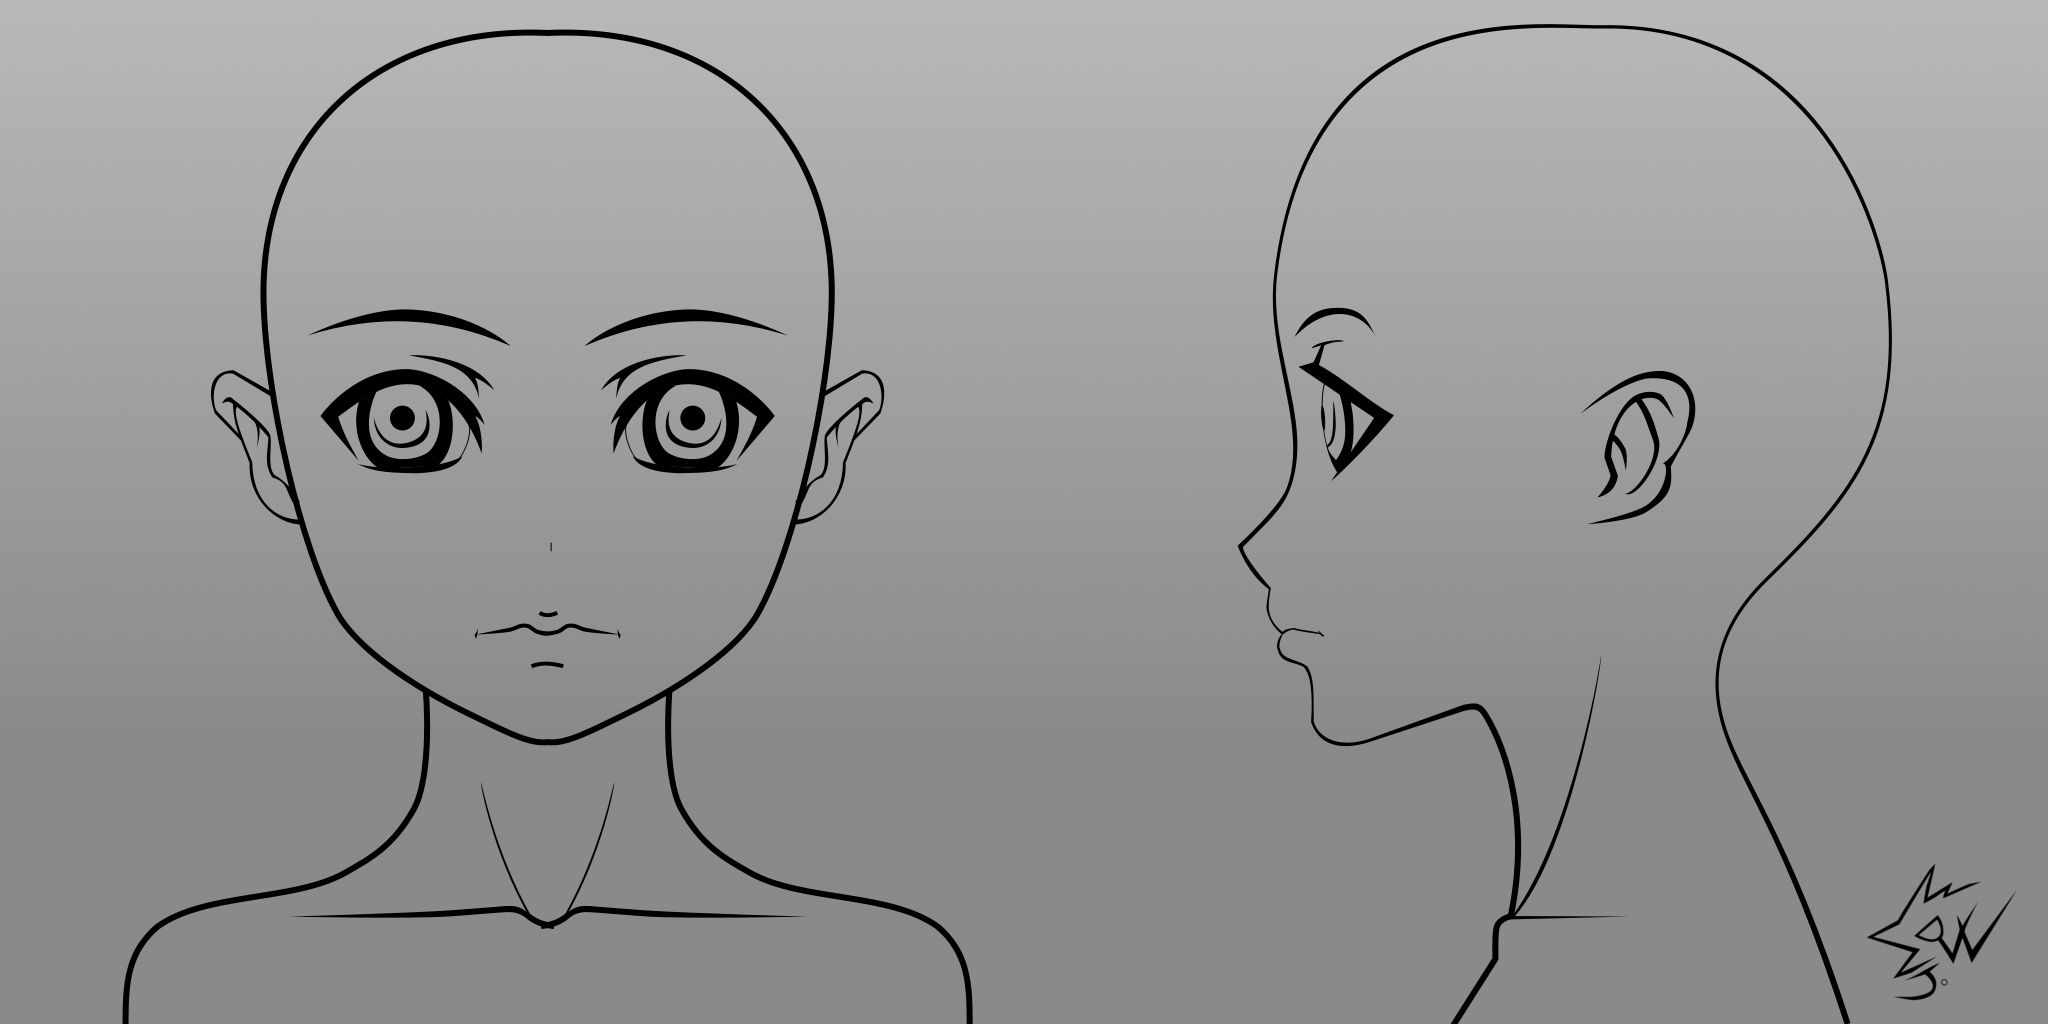 Anime Character Design Template : Anime girl model head template by johnnydwicked on